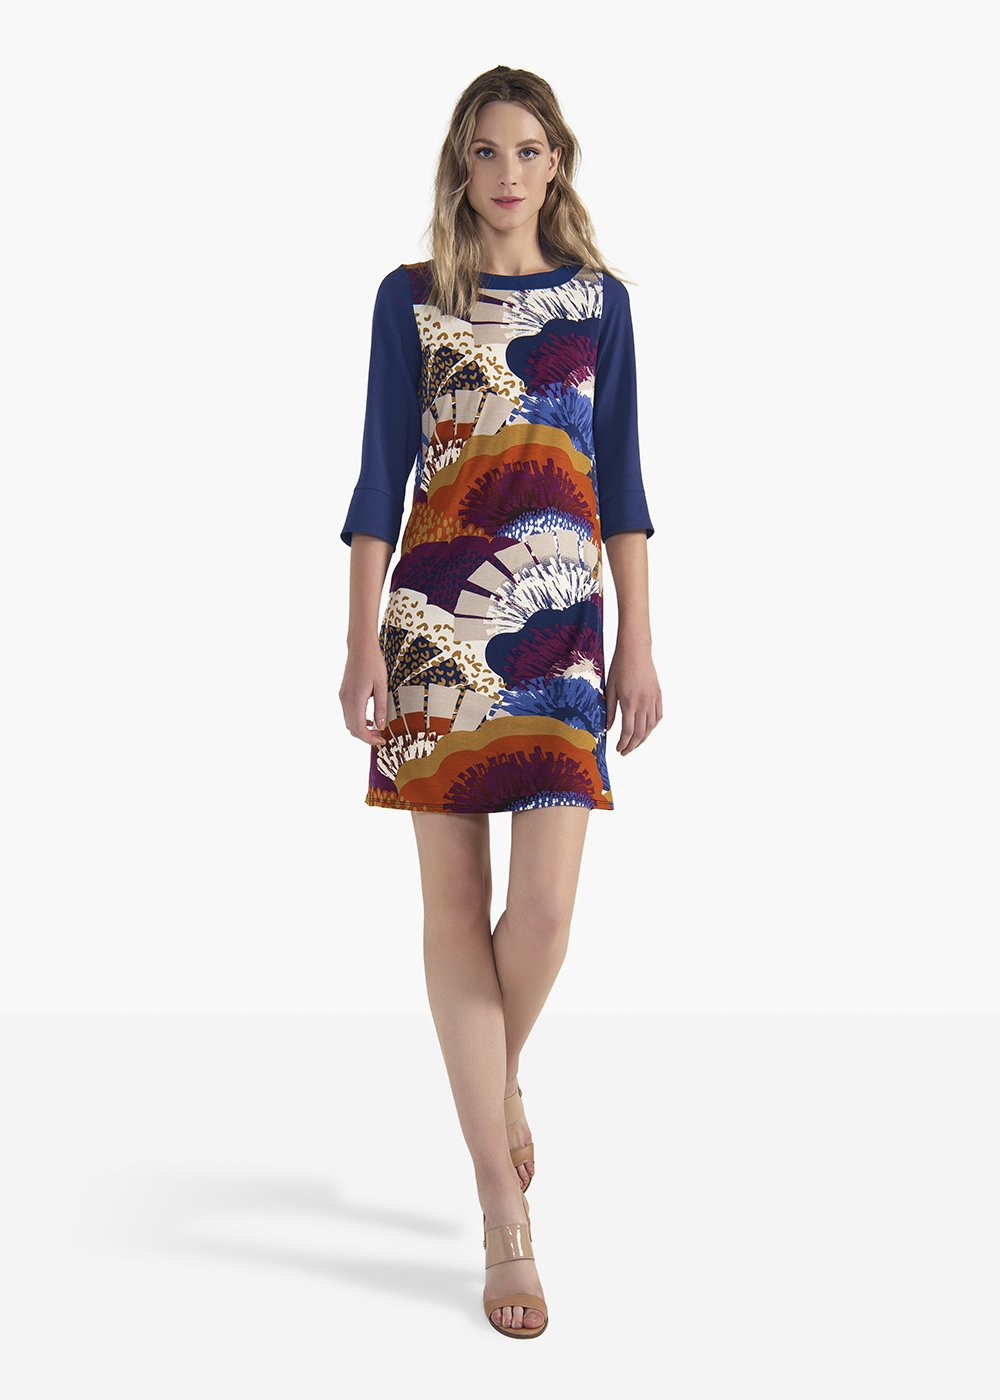 Adrian dress in viscose jersey with crepe sleeves - Avion / Mostarda Fantasia - Woman